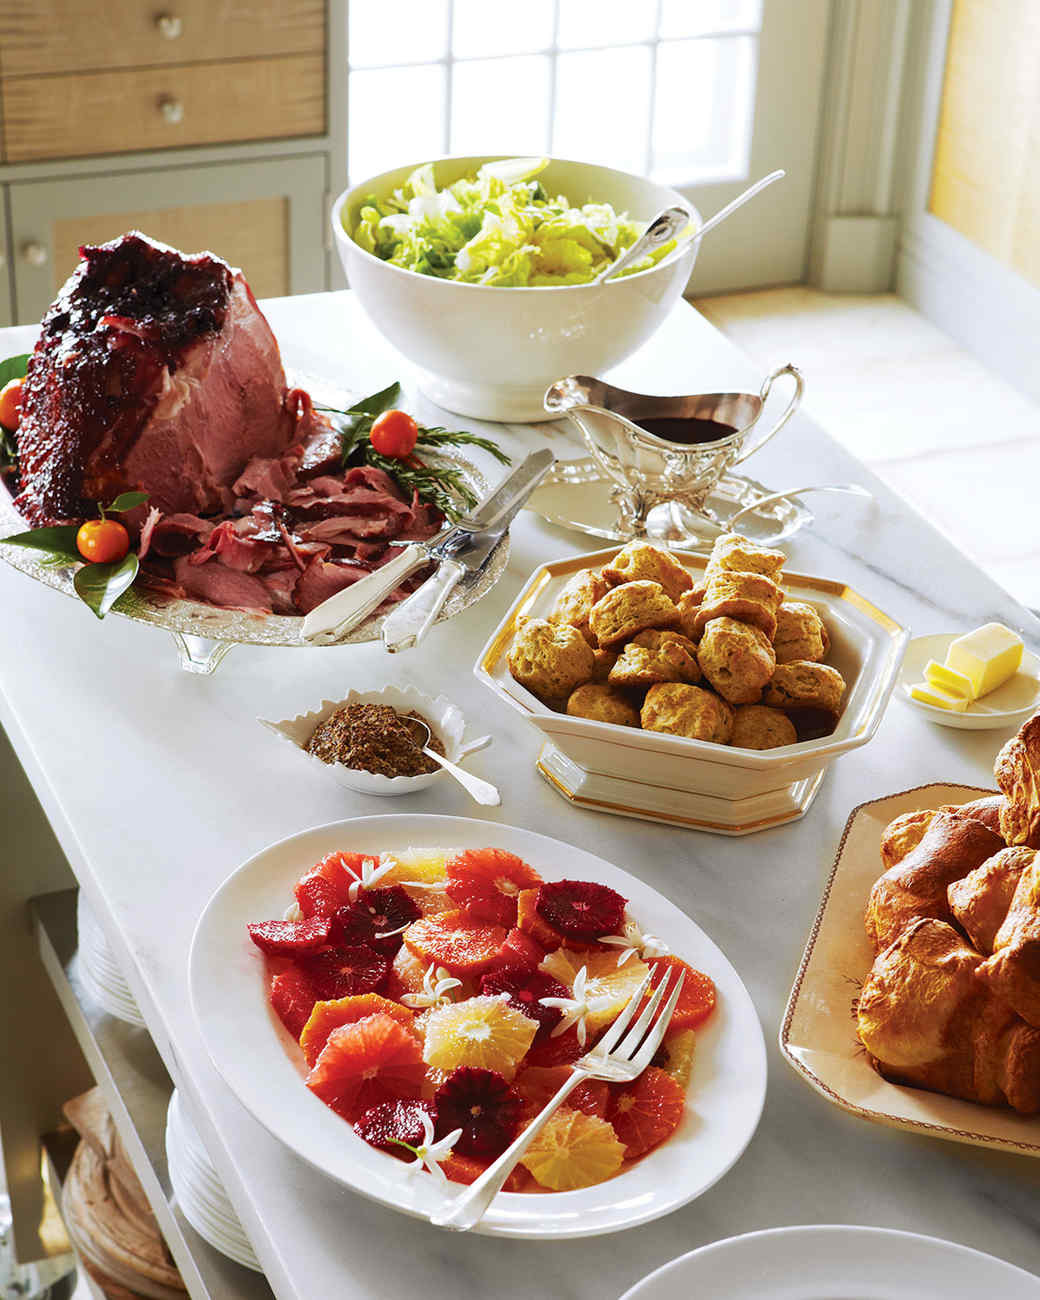 Recipe For Easter Ham  Easter Ham Recipes To Glaze or Not to Glaze That Is the